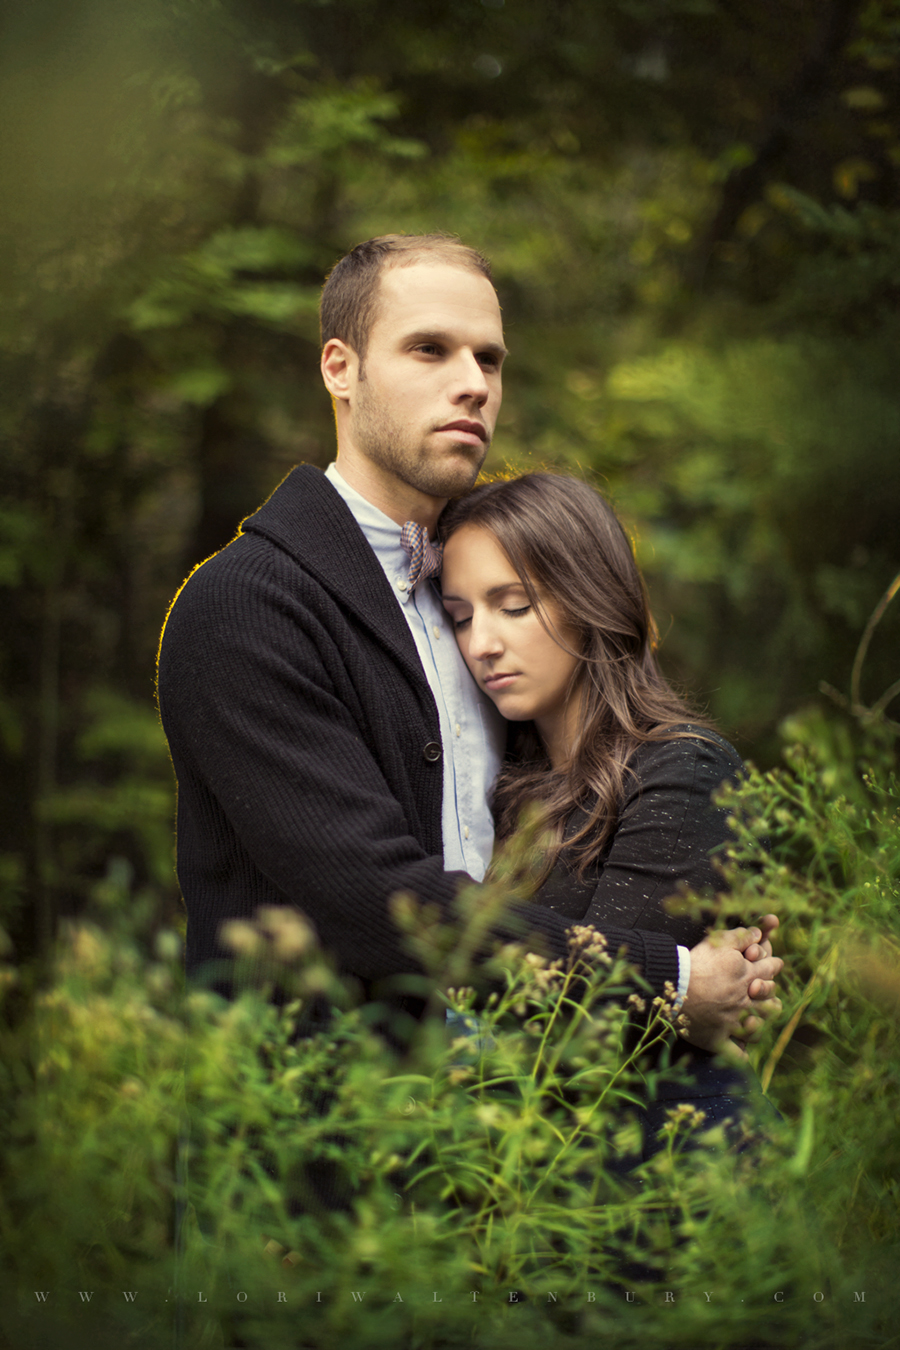 cedarvale engagement session in toronto